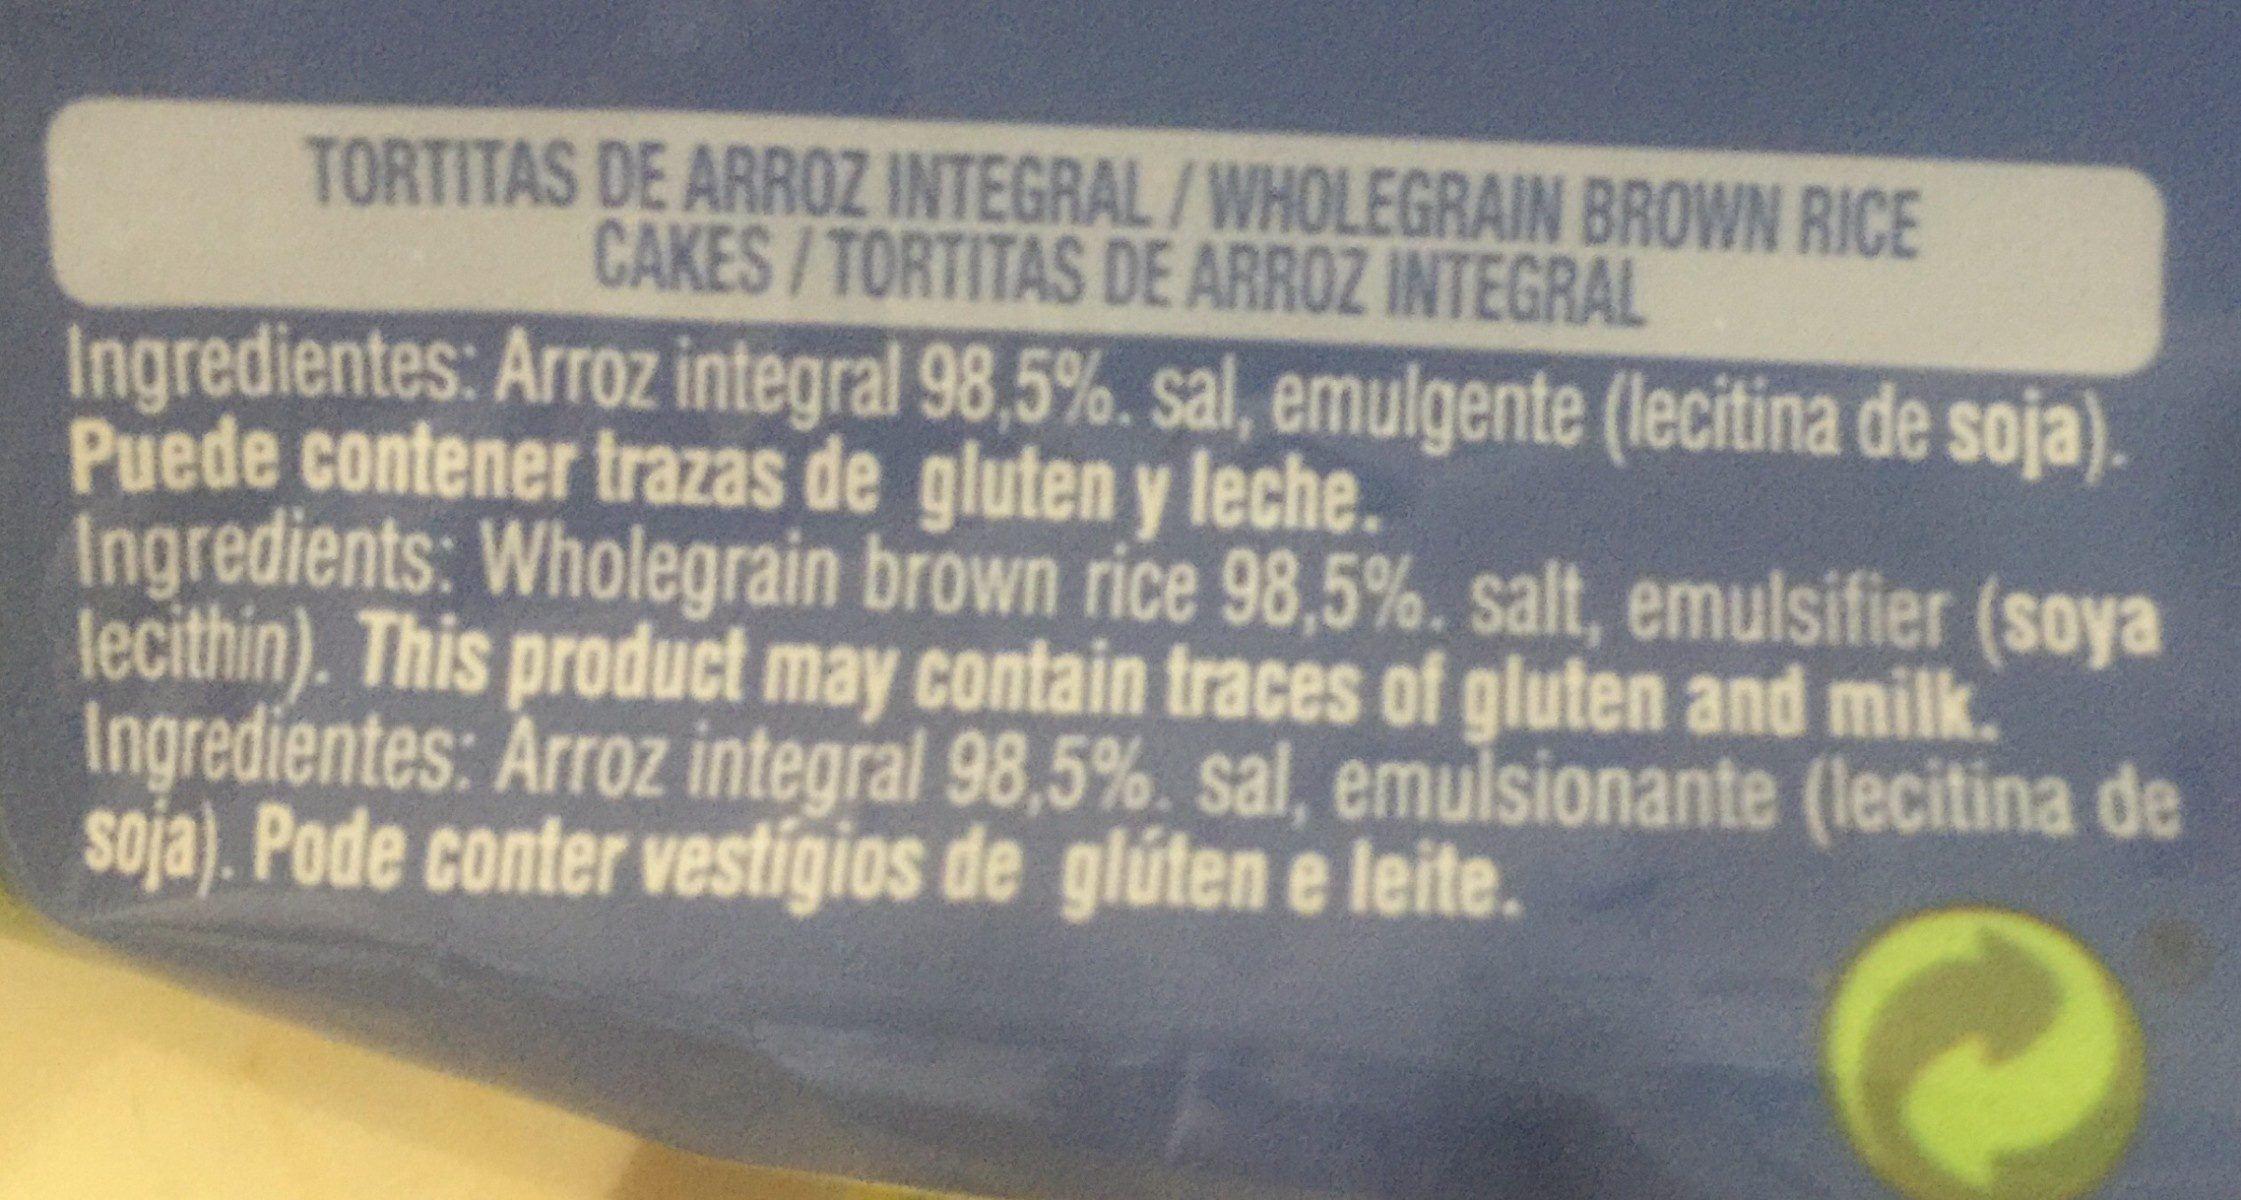 Gullón Tortitas De Arroz Integral Vitalday - Ingredientes - fr